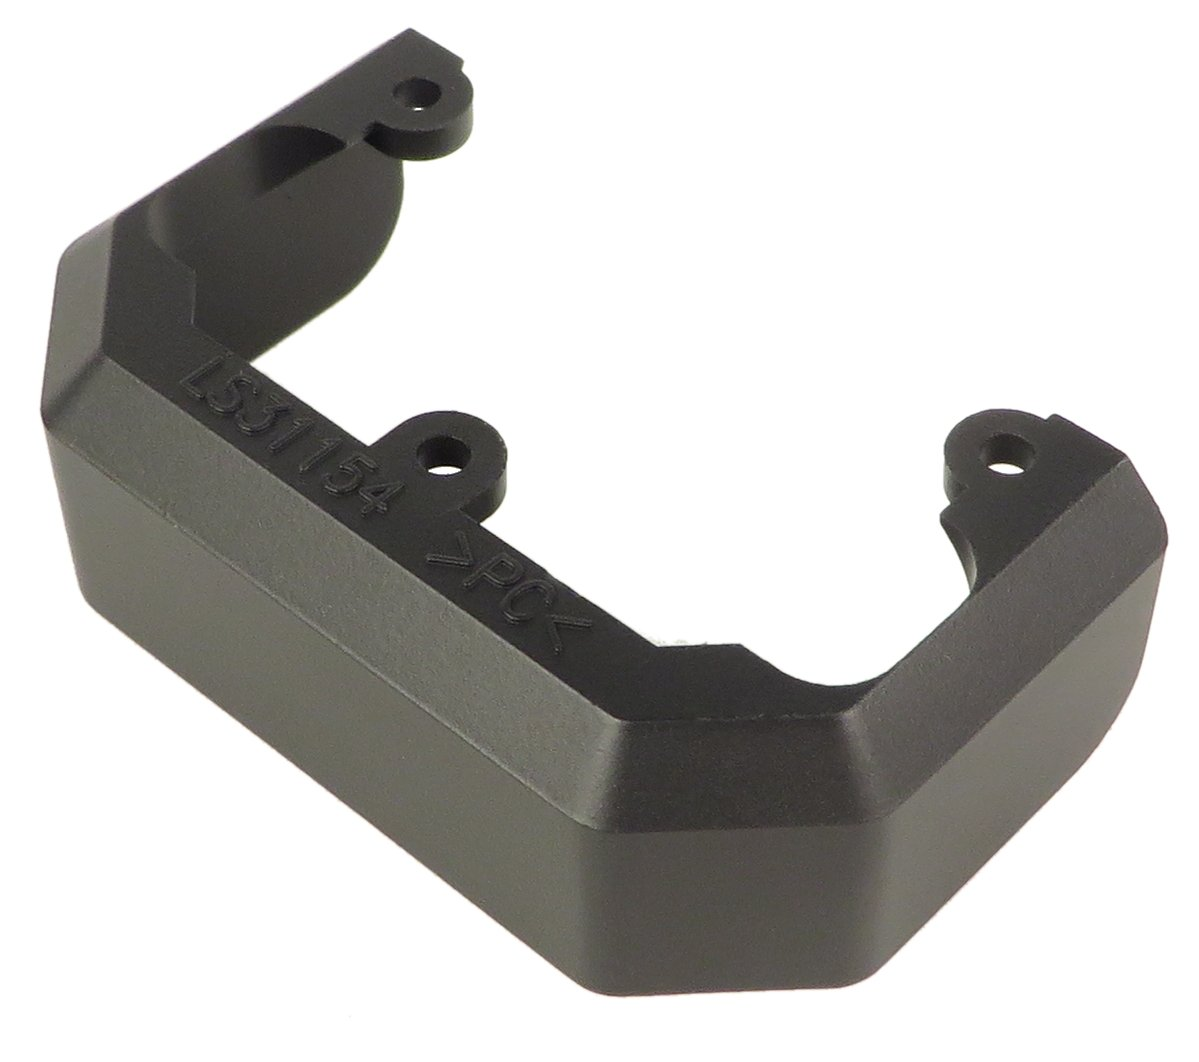 Rear Base Cover for GY-HM700U and GY-HM790U